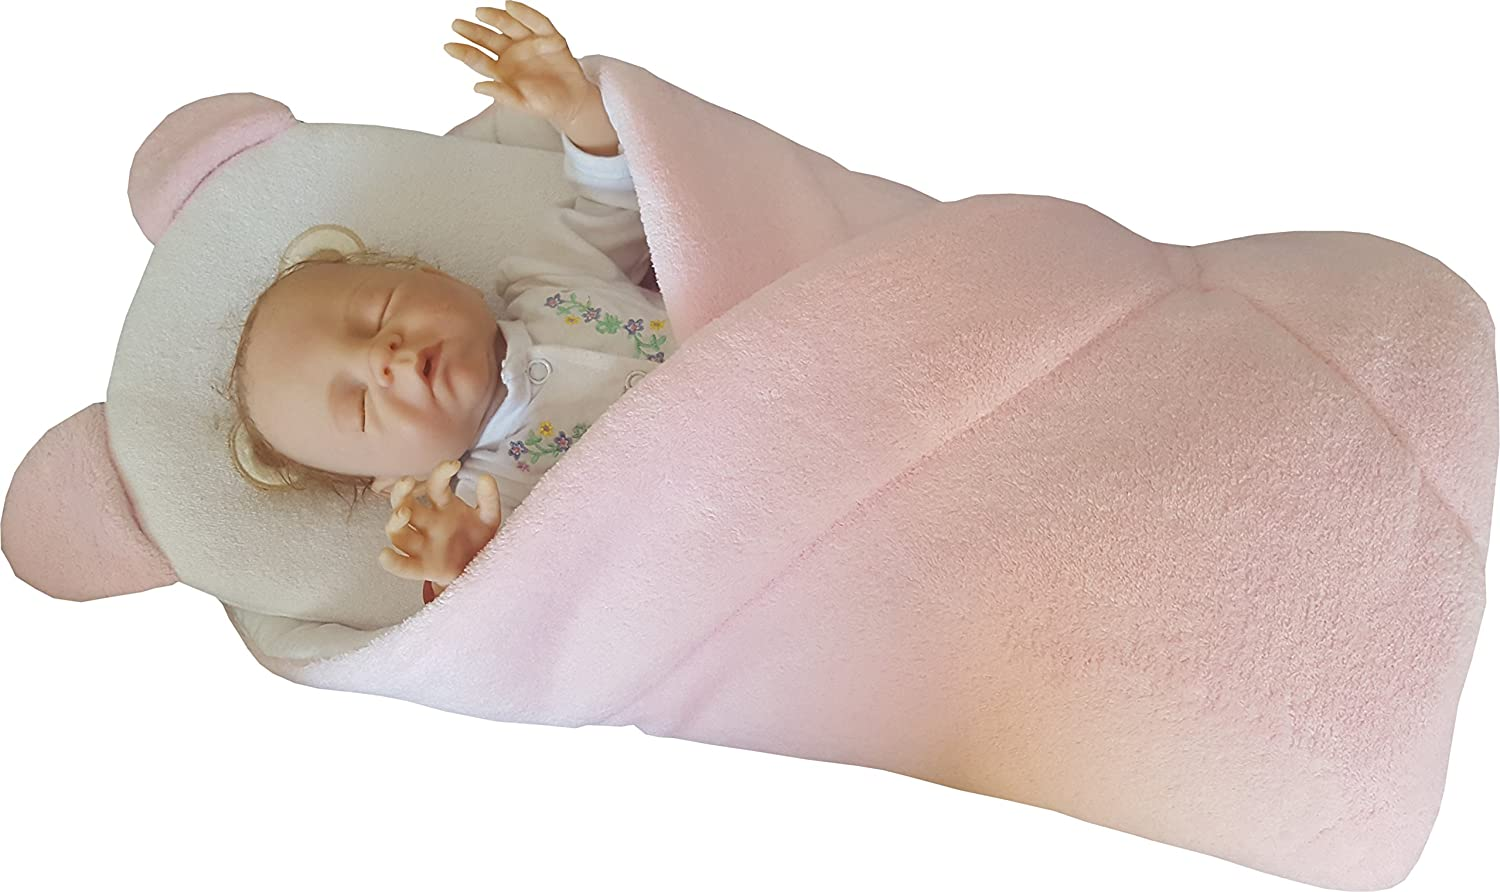 BlueberryShop Fleece Very Warm and Cute Swaddle Wrap/Blanket with Pillow, Pink Blueberry Shop for Babies 40004006